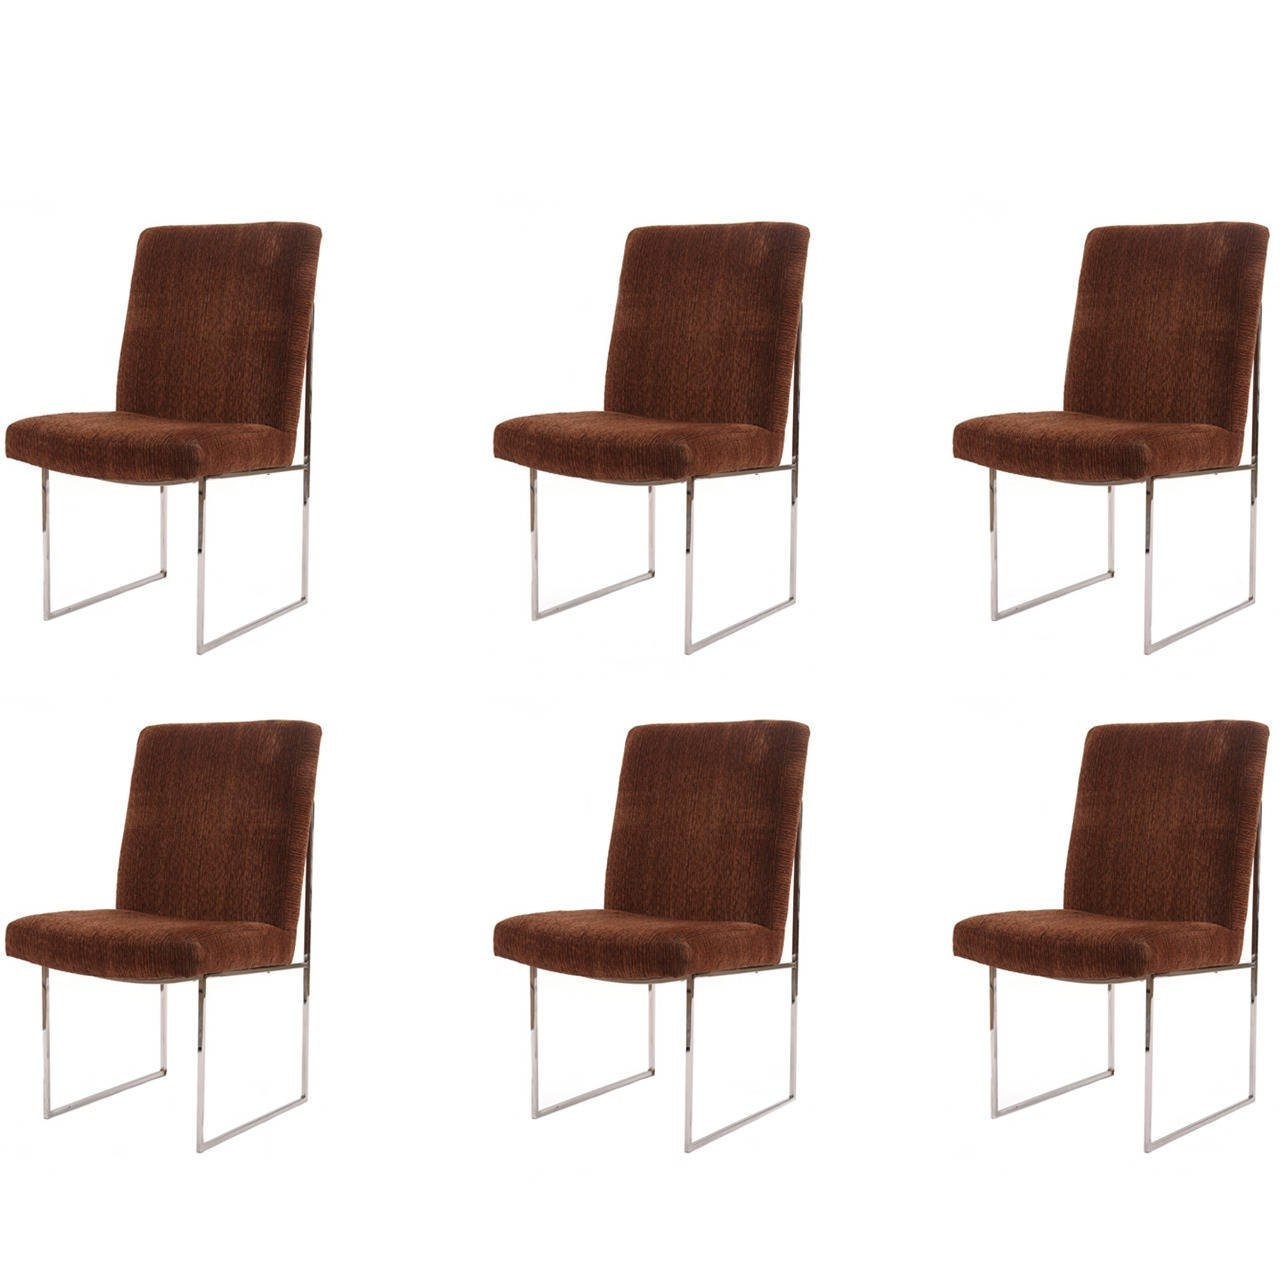 2018 Milo Baughman Thayer Coggin Chrome And Upholstered Dining Chairs With Regard To Chrome Dining Chairs (View 2 of 25)